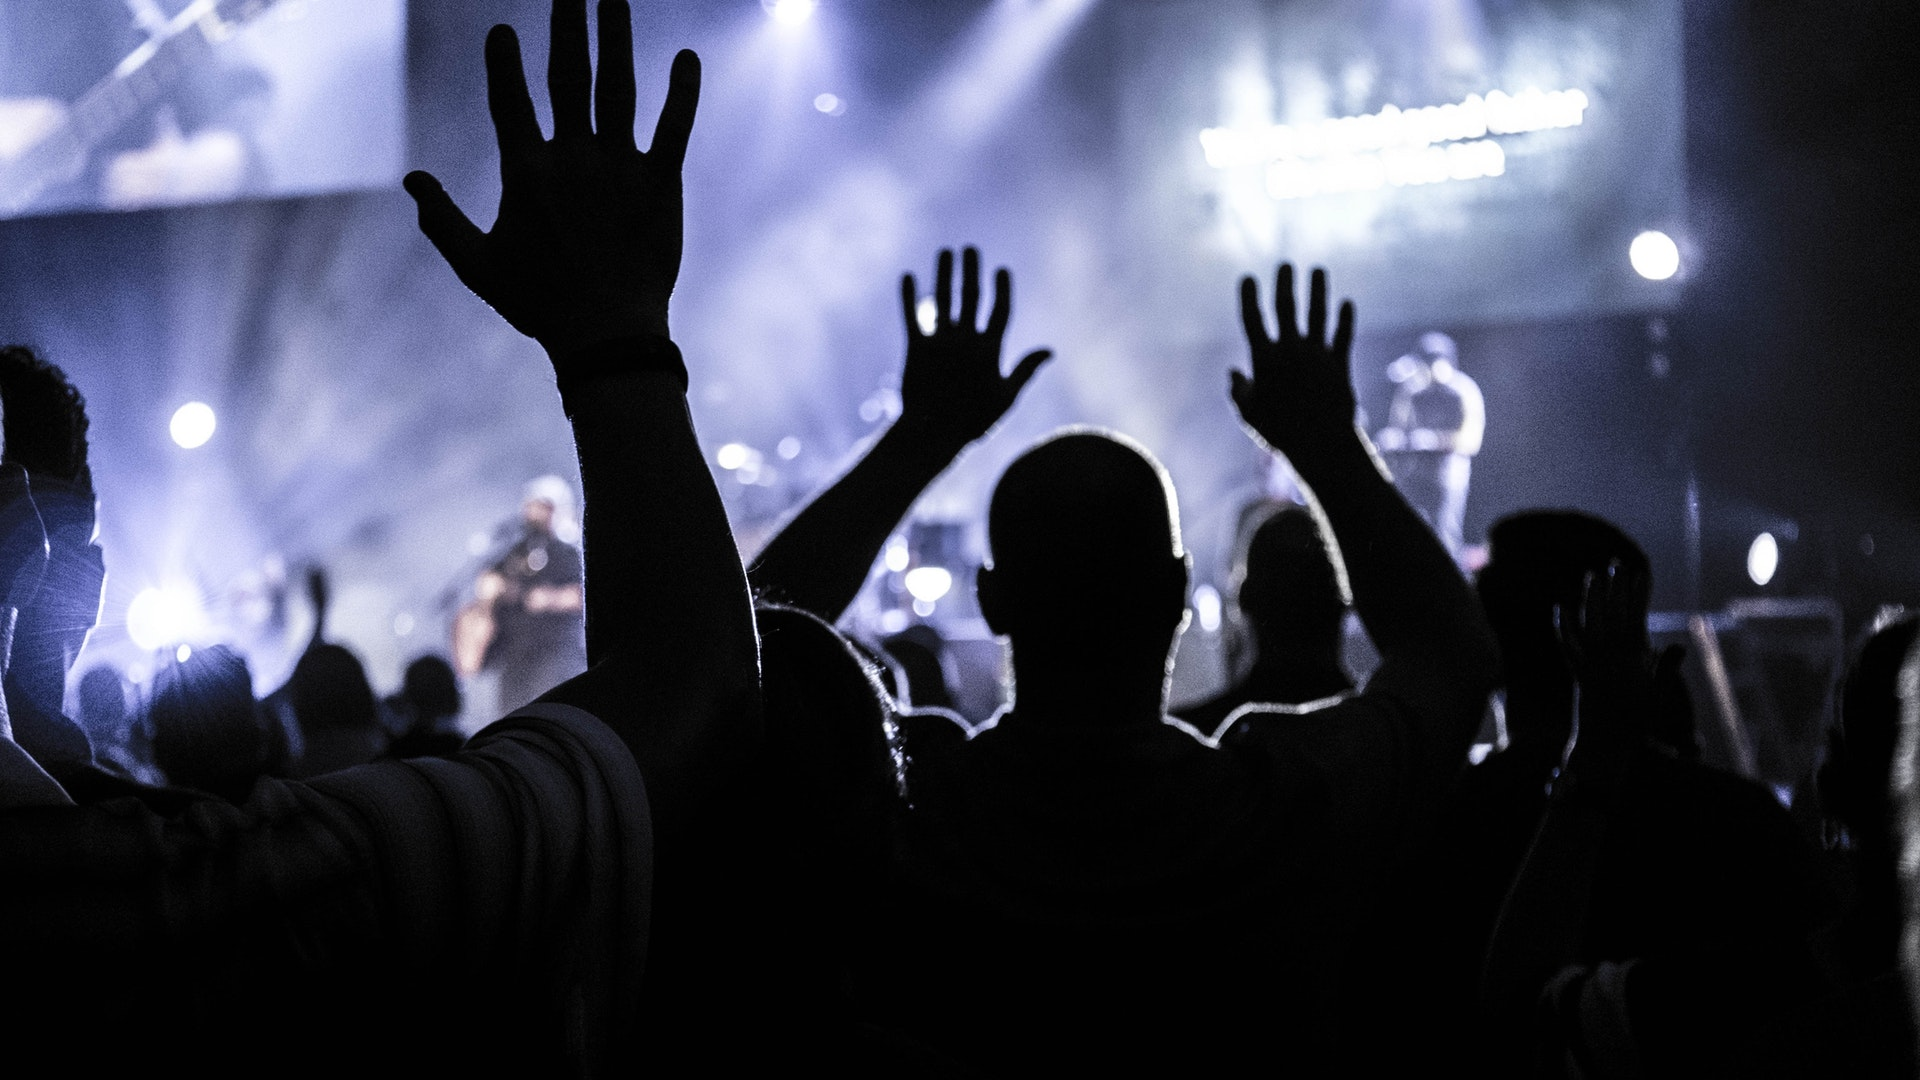 audience hands in the air in worship